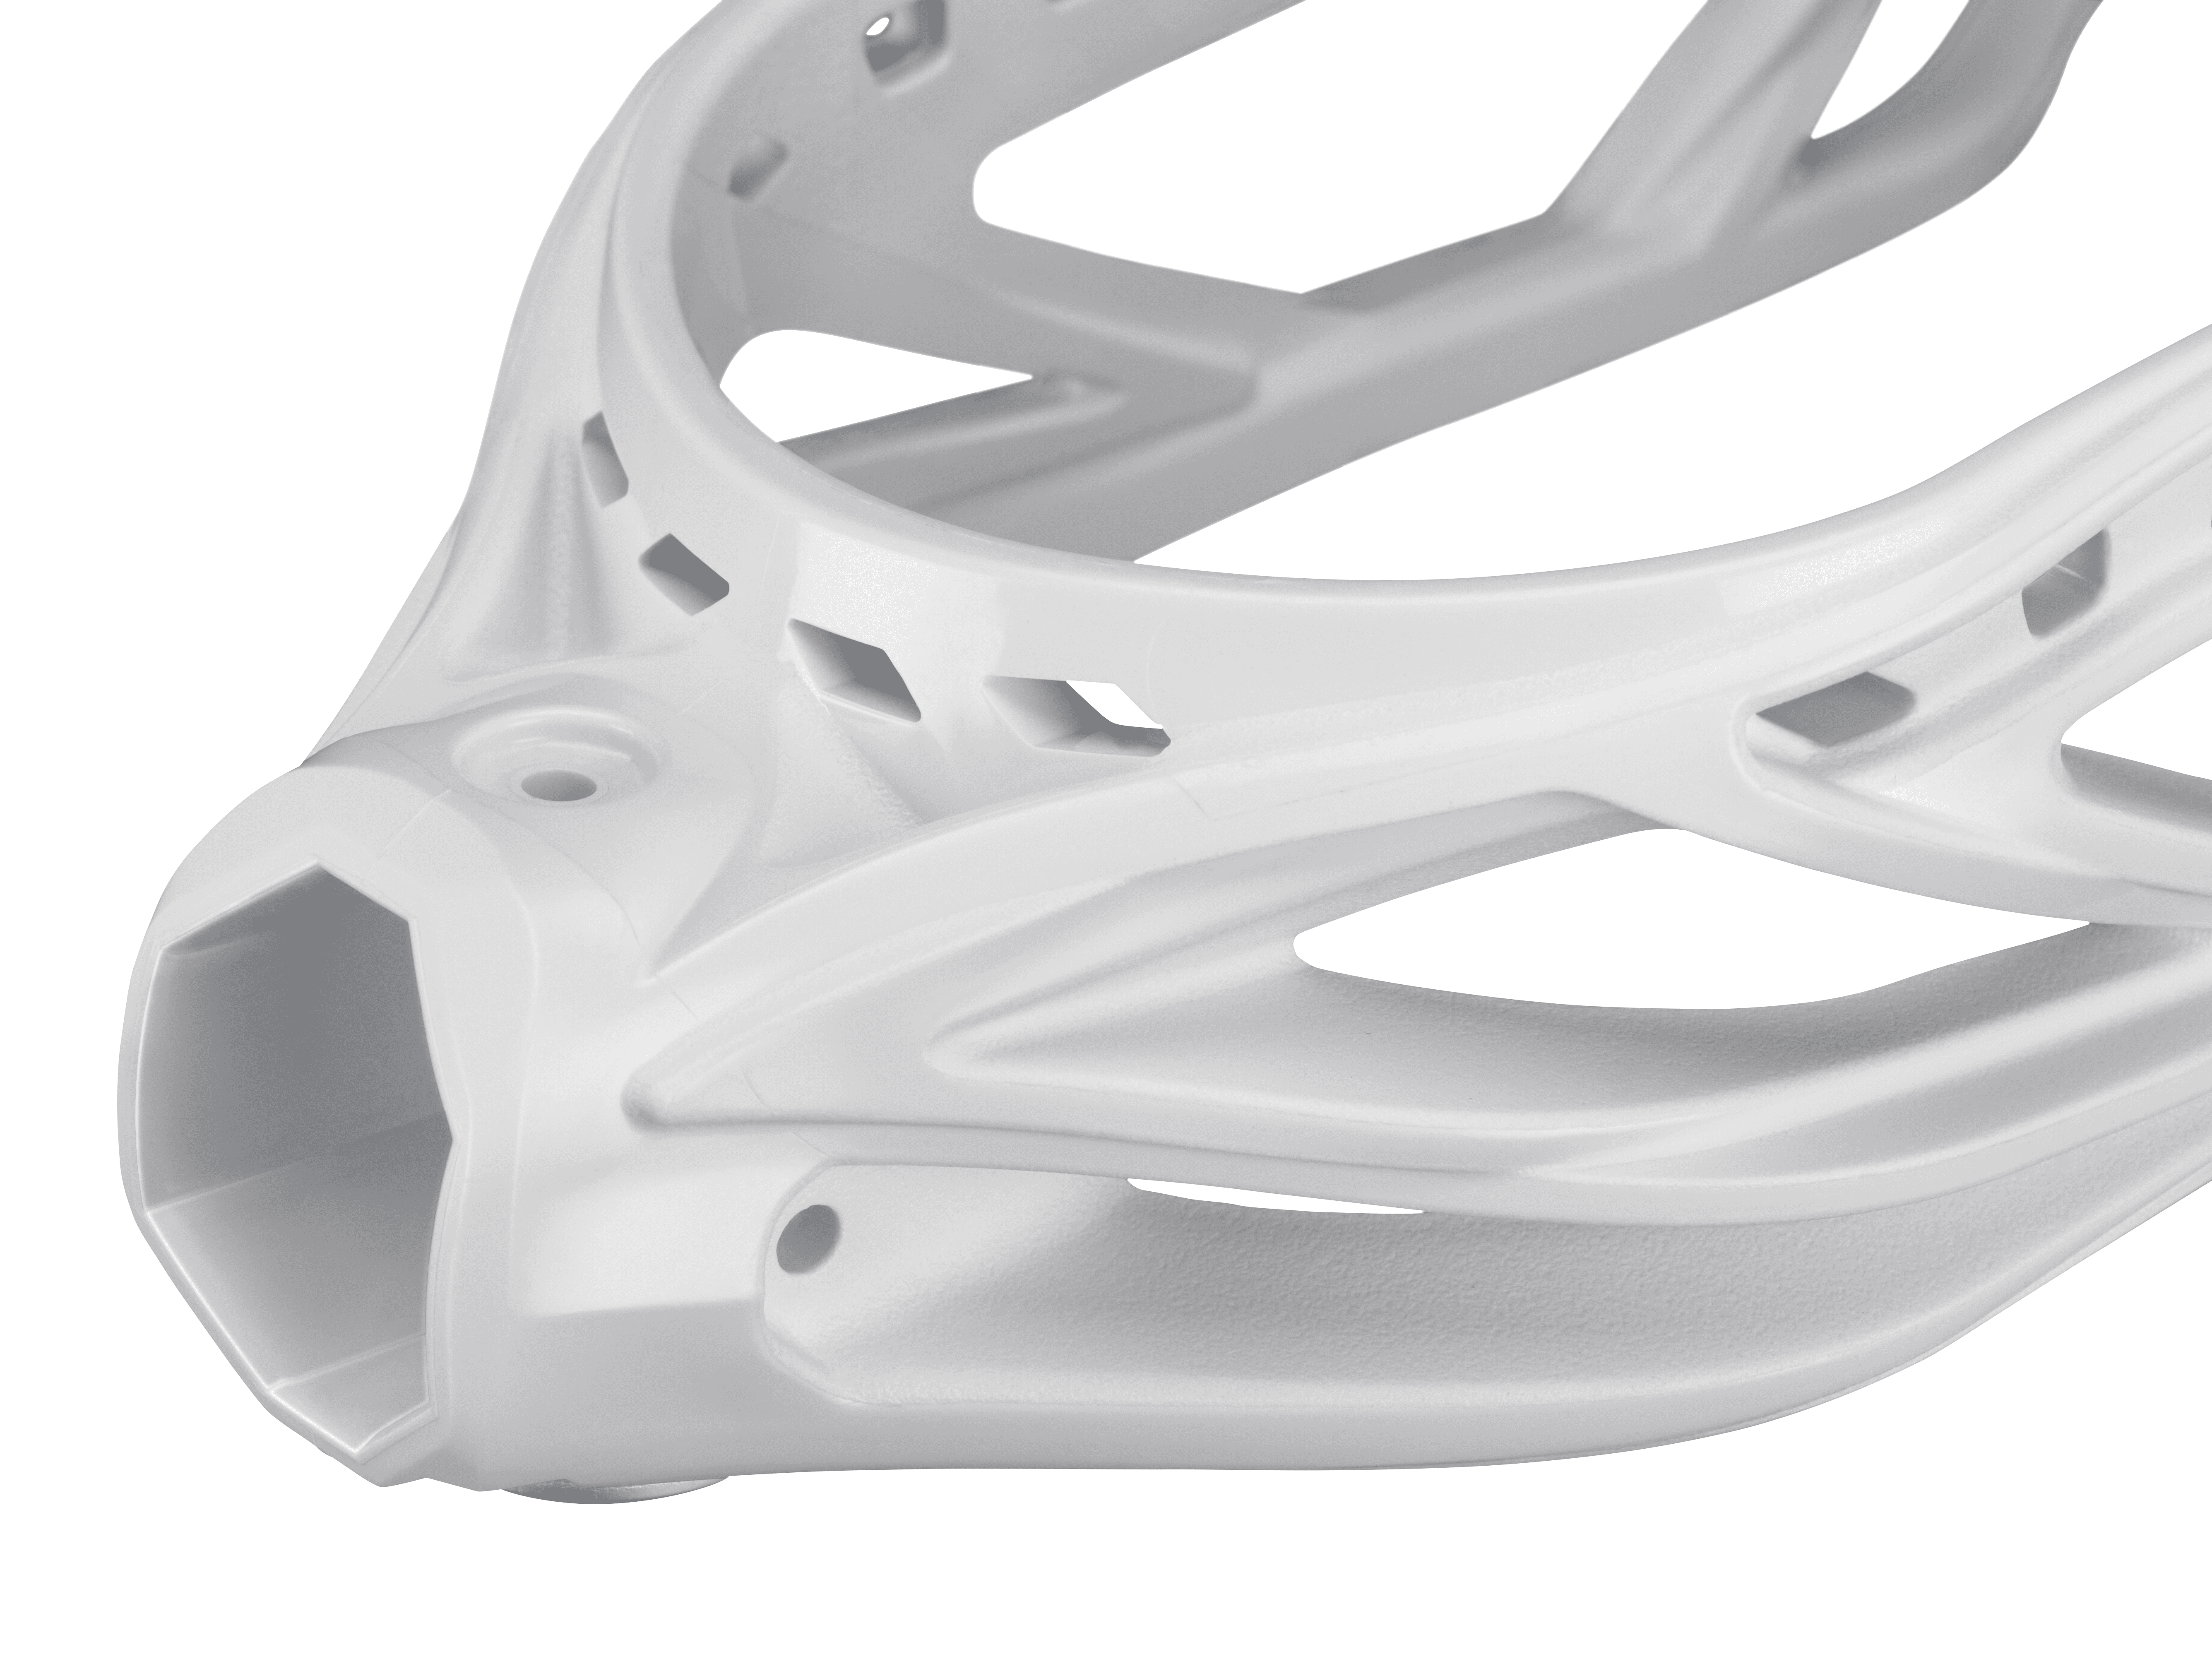 LOCK_HEAD_FACEOFF_WHITE_UNSTRUNG_THROAT_DETAIL-1.png